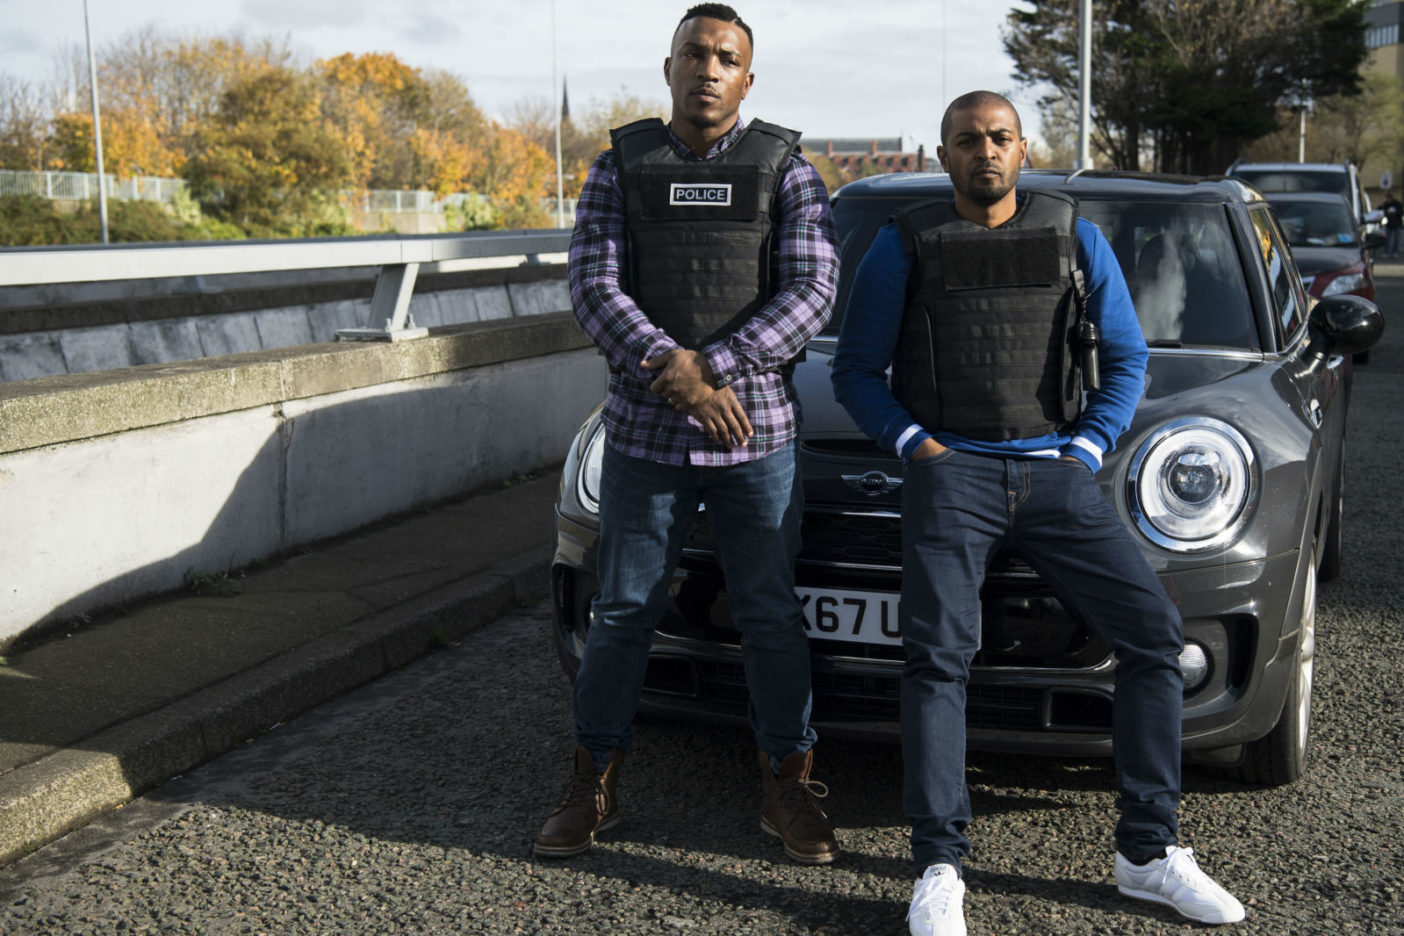 Still from Bulletproof staring Noel Clarke and Ashley Walters